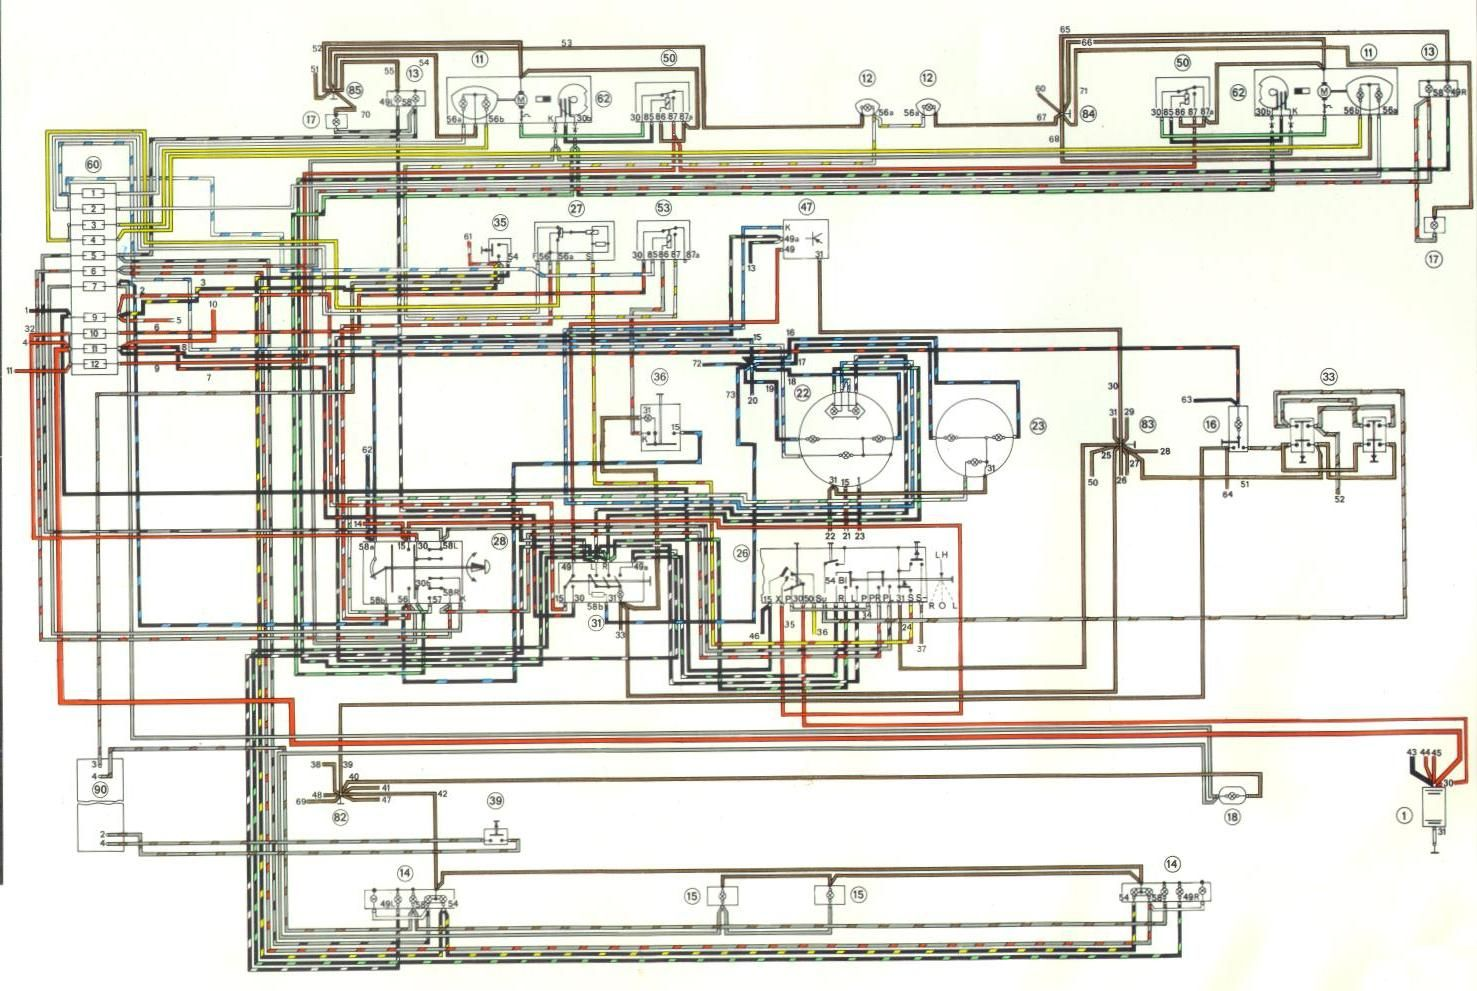 Porsche 914 Engine Diagram | Wiring Library